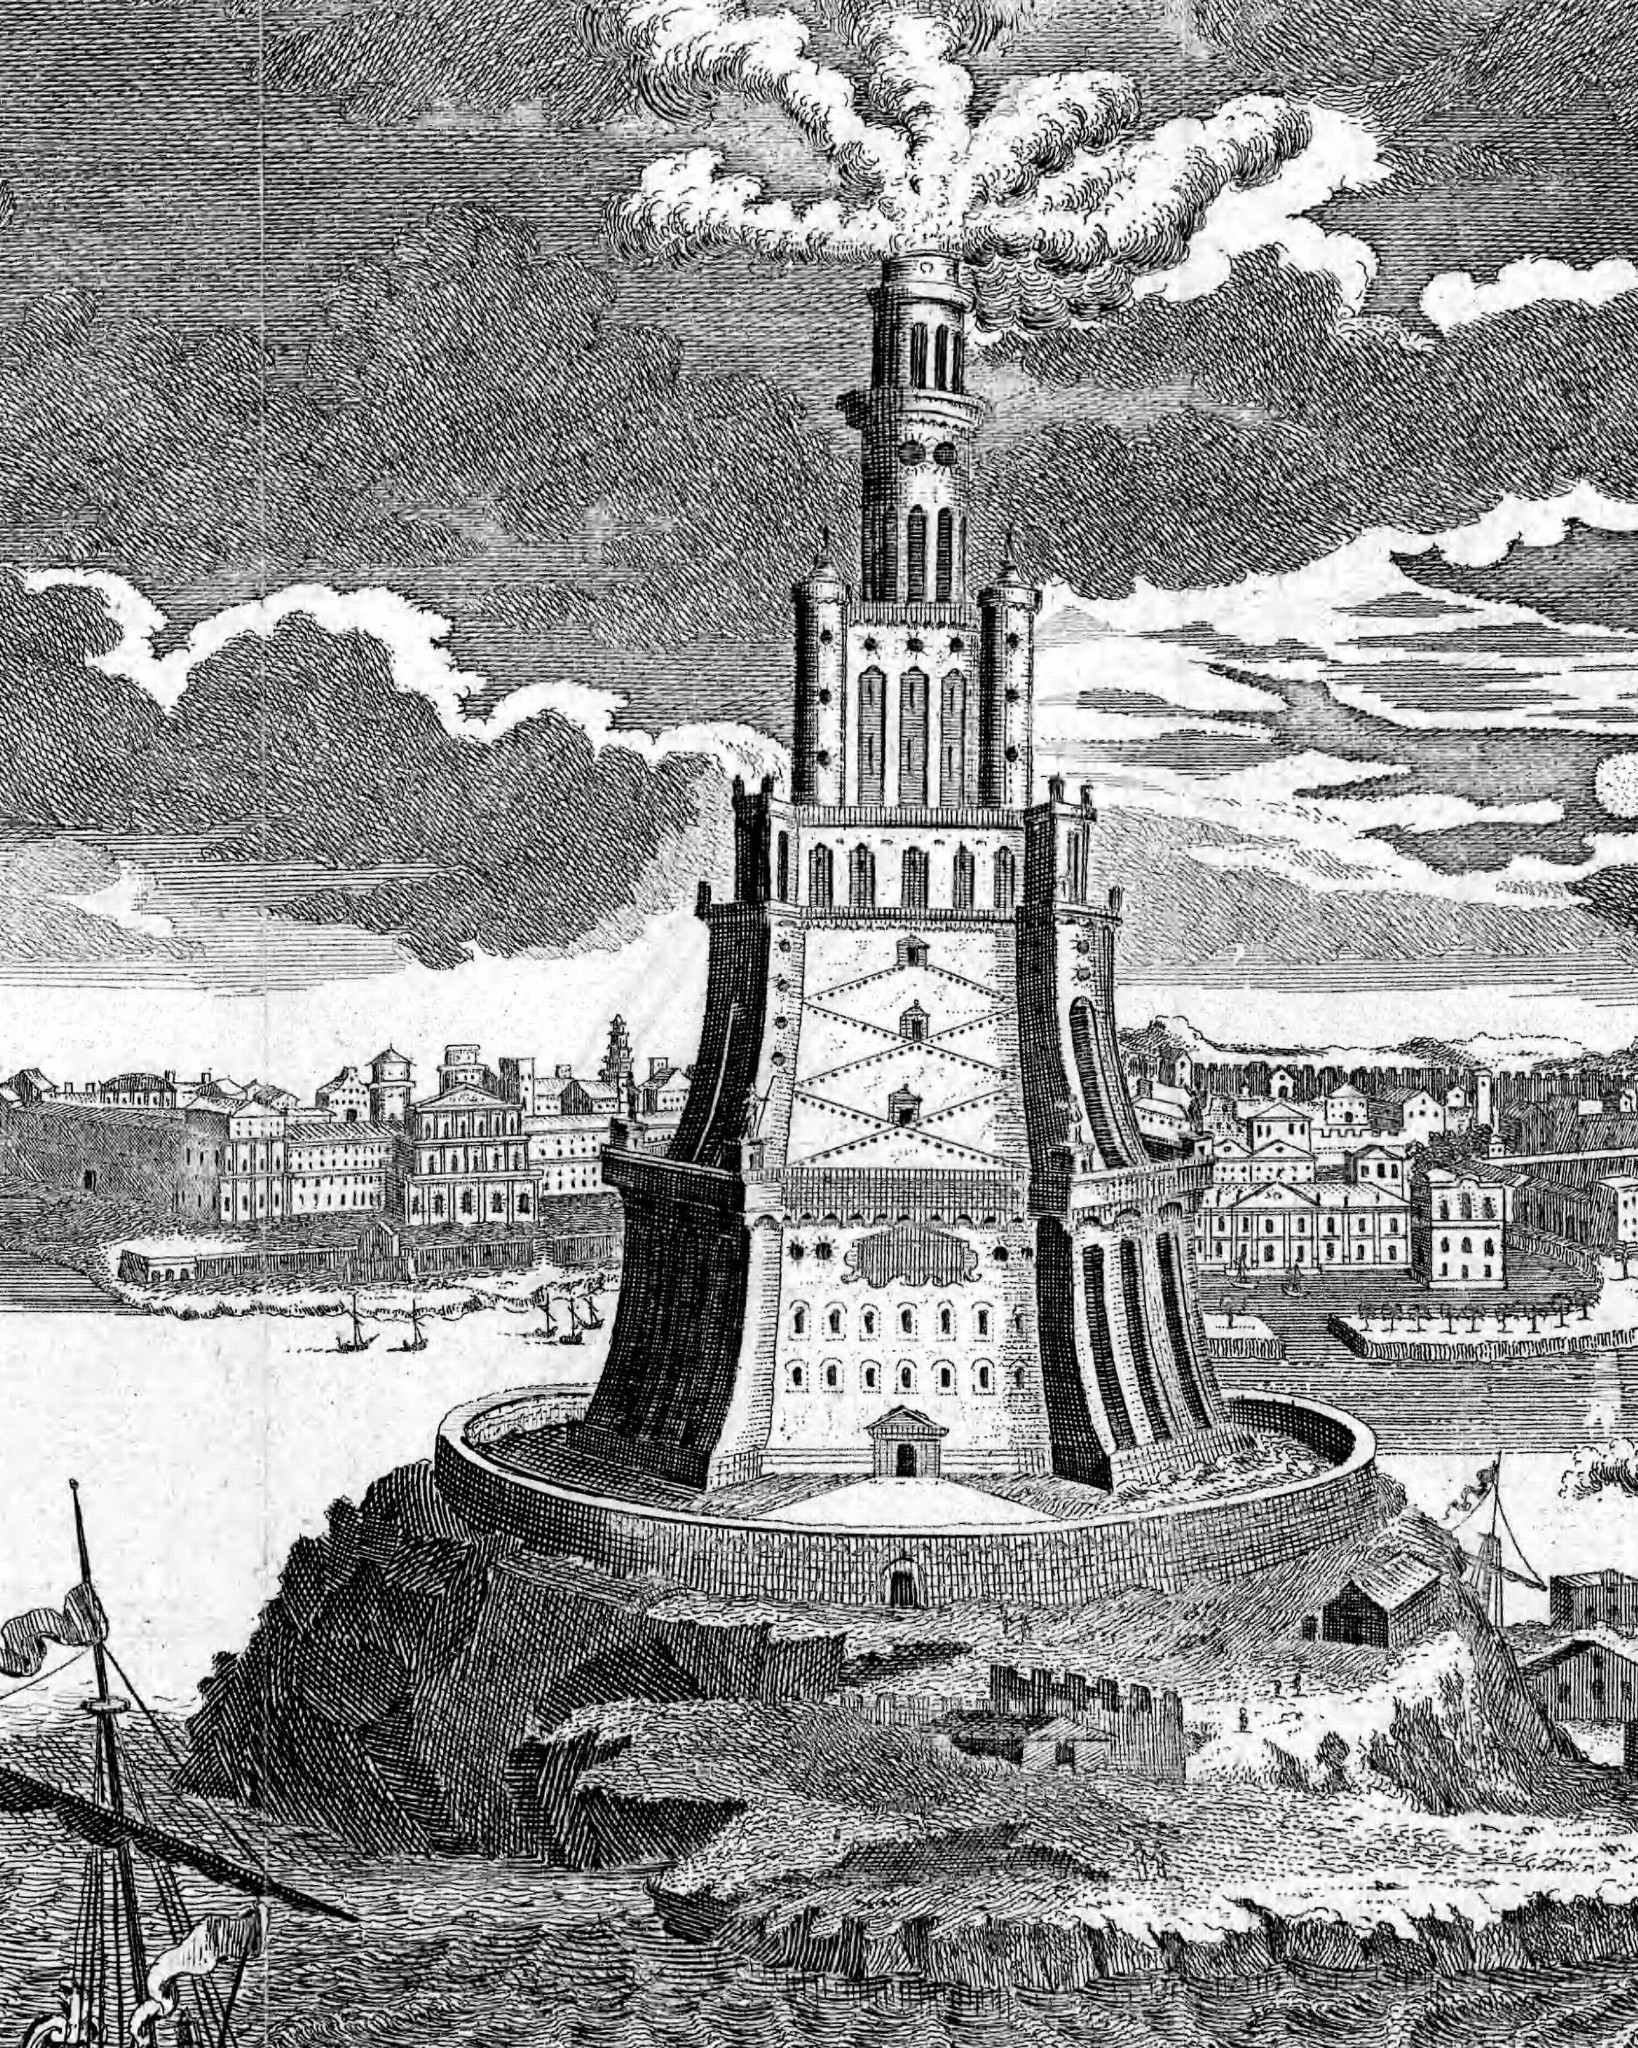 The story of cities, part 1: how Alexandria laid foundations for the modern world